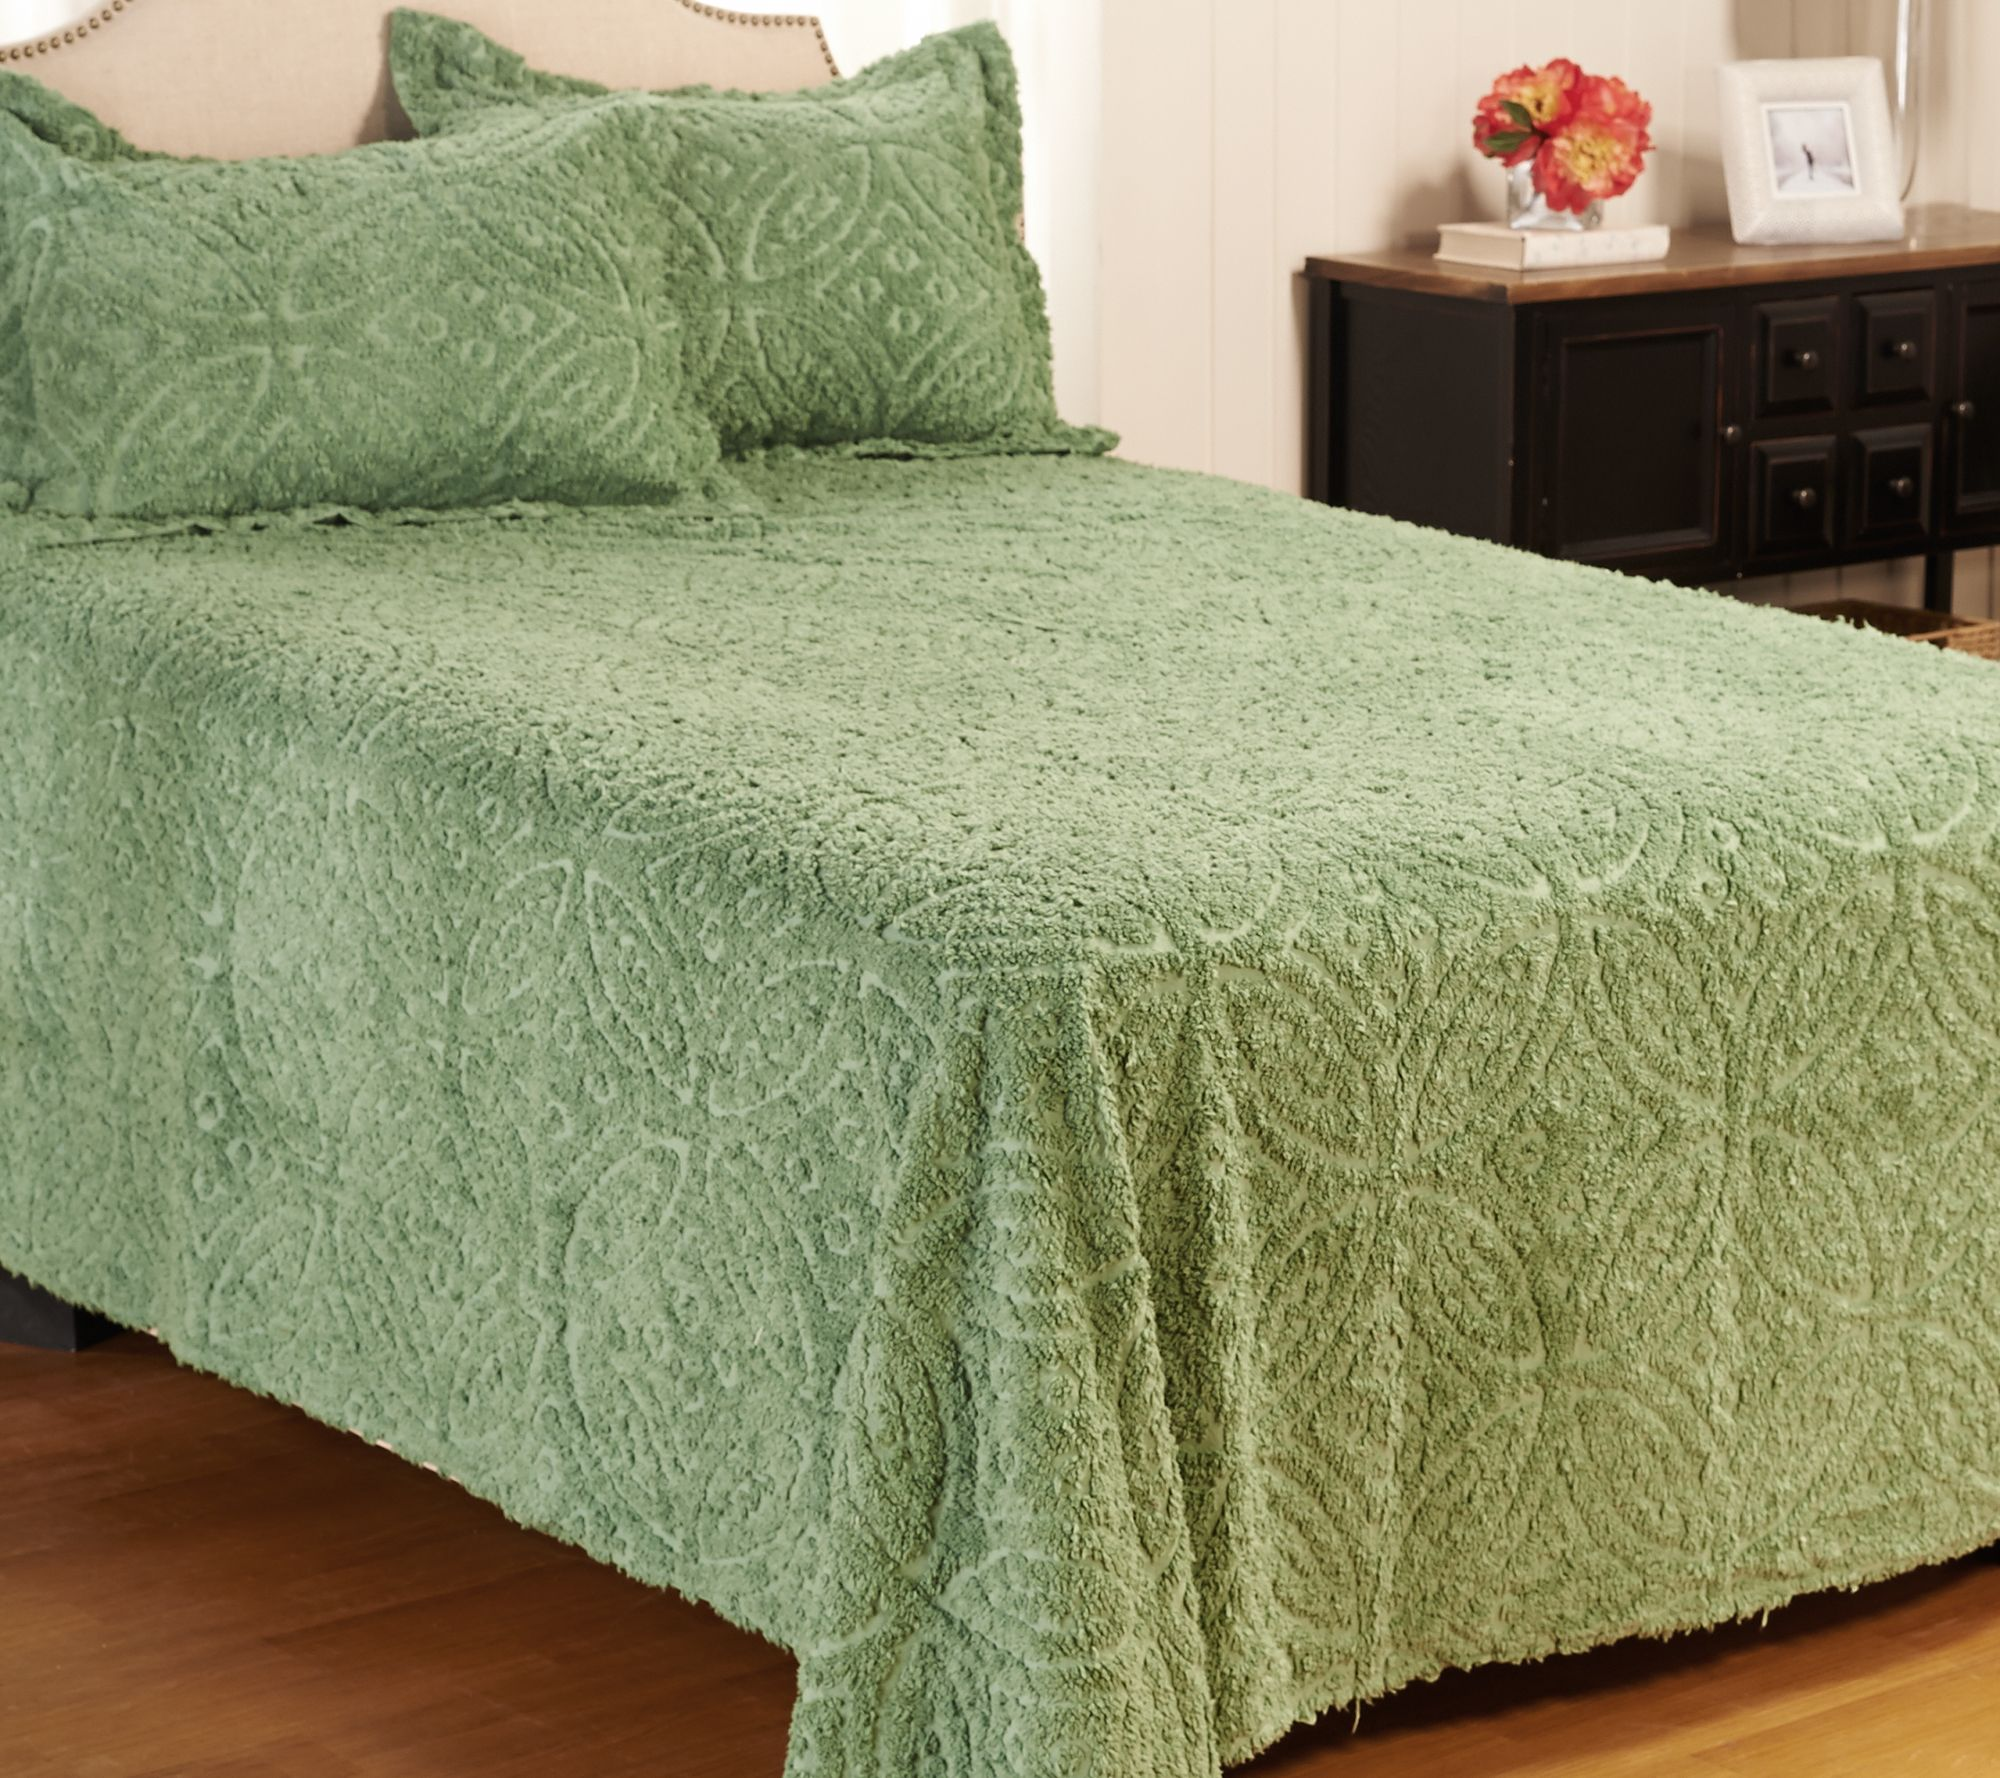 Wedding Ring Chenille 100 Cotton Queen Bedspread With Shams Page 1 Qvc